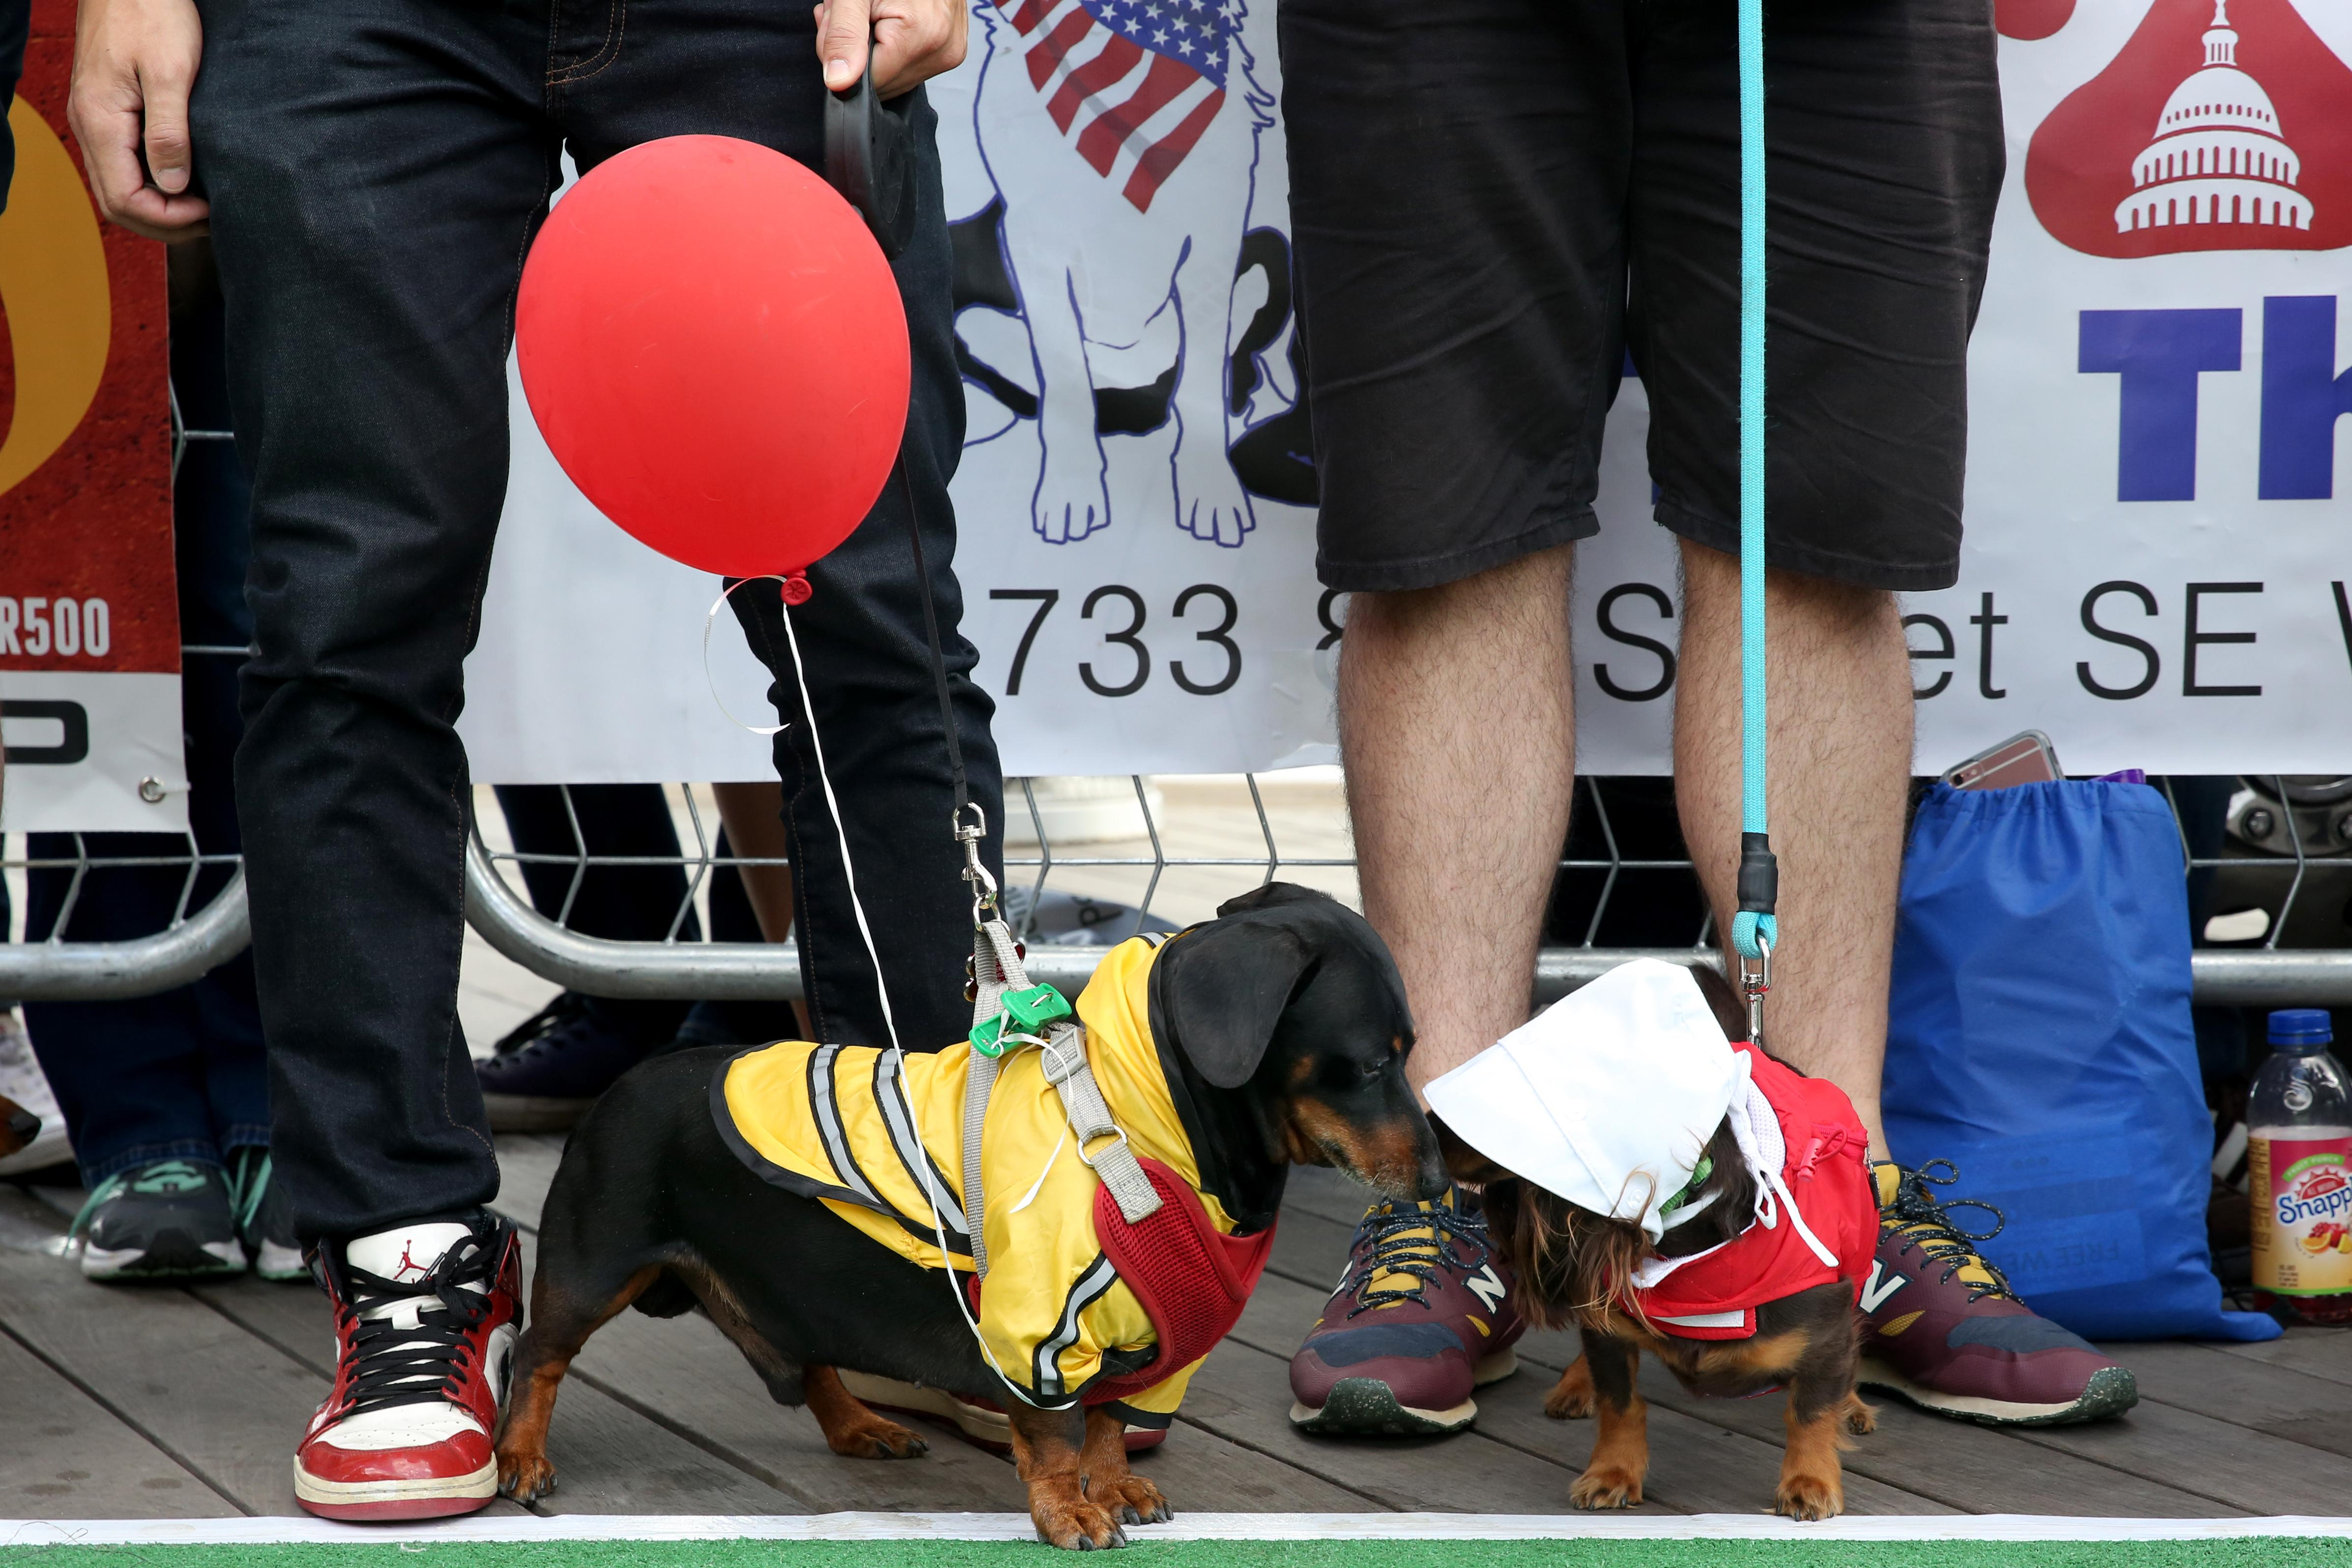 The weenies were flying at the 6th annual Wiener 500. Dozens of dachshunds participated in the races and a costume contest at The Yards Park on Sept. 30, but their humans had the chance to compete for glory during a stein-hoisting contest. (Amanda Andrade-Rhoades/DC Refined)